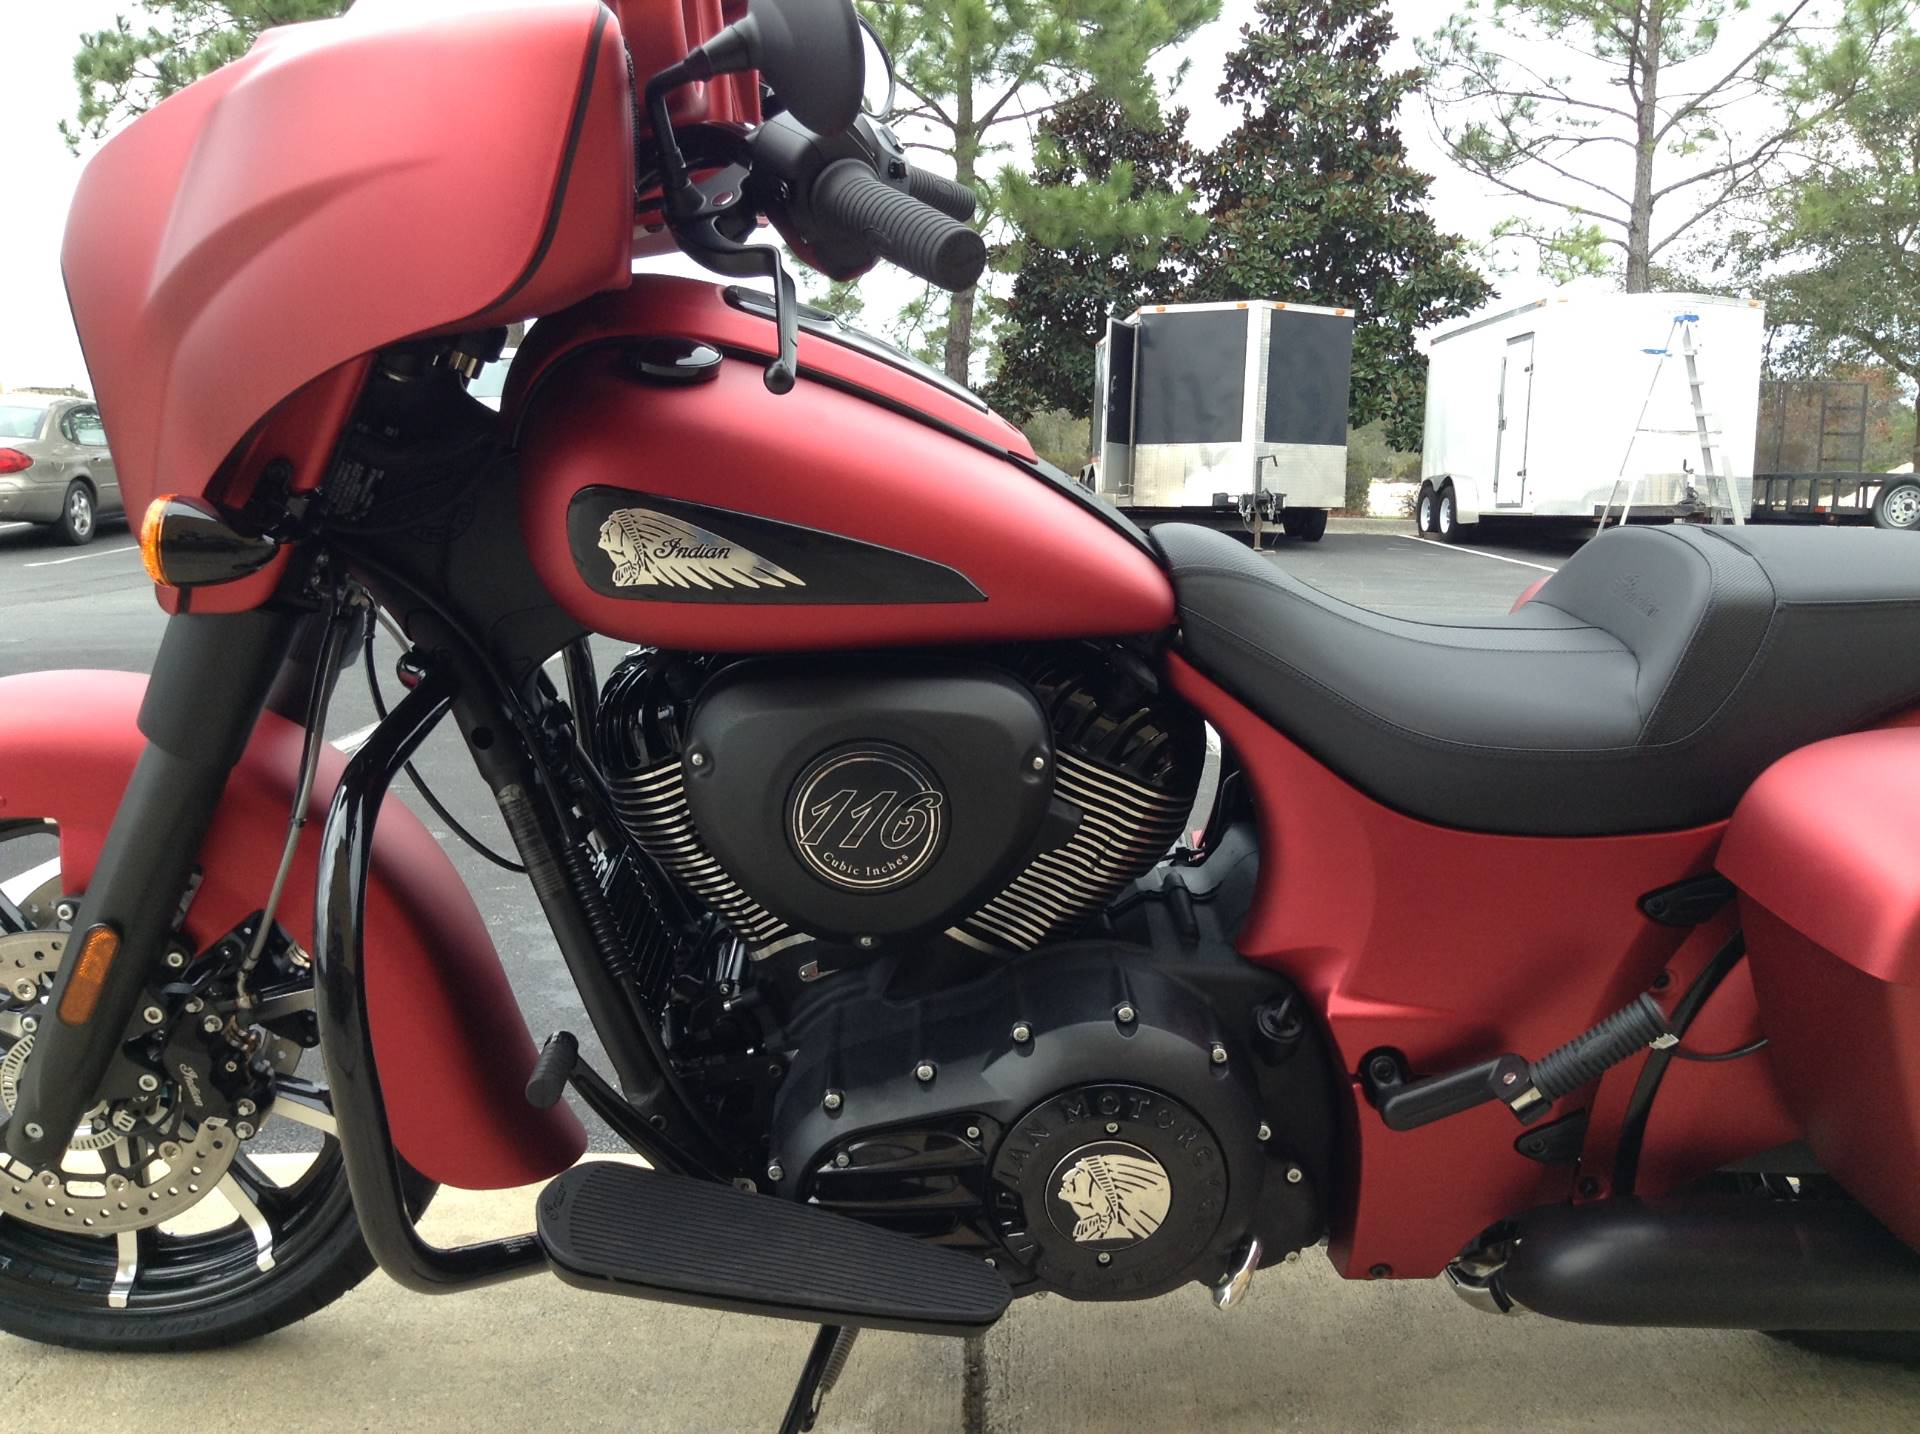 2020 Indian CHIEFTAIN DARKHORSE in Panama City Beach, Florida - Photo 8